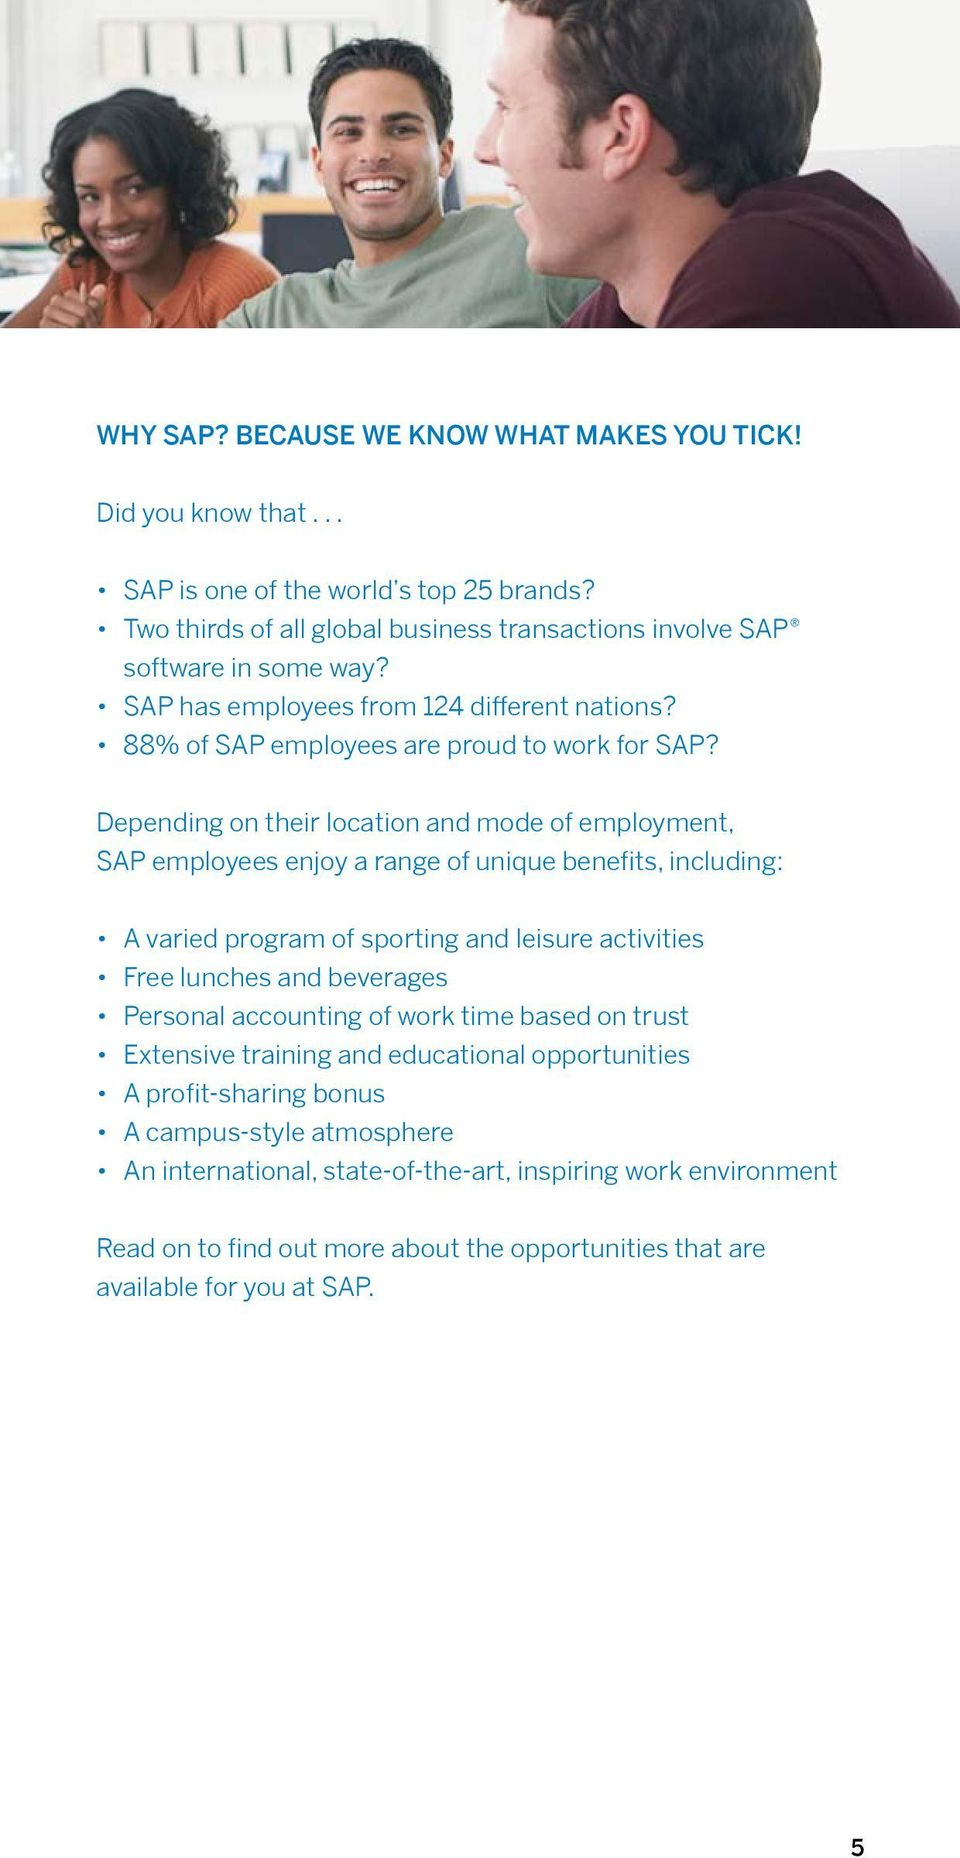 Depending on their location and mode of employment, SAP employees enjoy a range of unique benefits, including: A varied program of sporting and leisure activities Free lunches and beverages